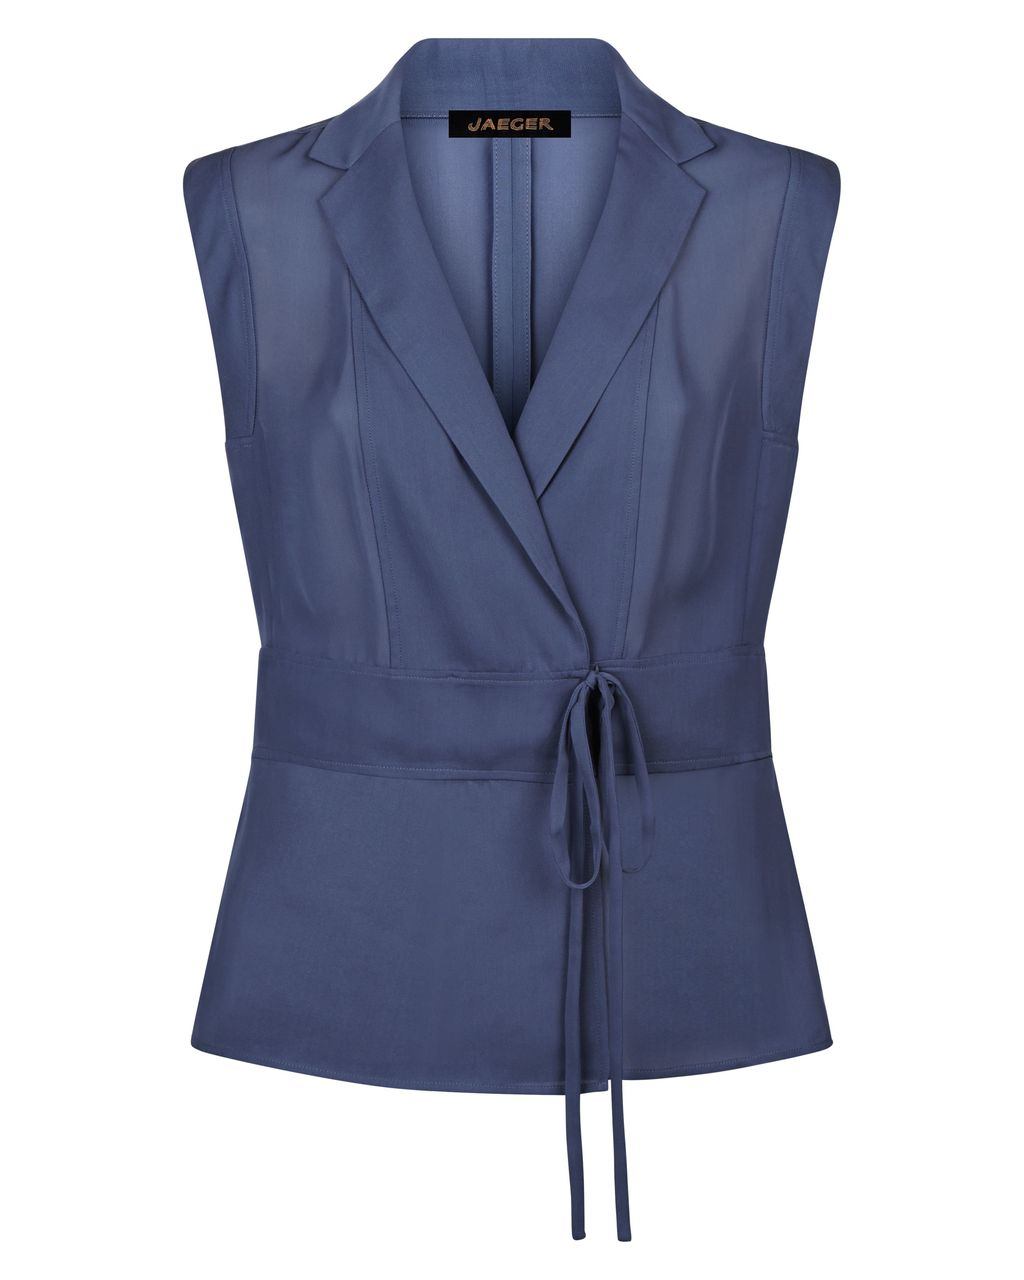 Lapel Wrap Blouse, Navy - neckline: v-neck; pattern: plain; sleeve style: sleeveless; style: wrap/faux wrap; waist detail: belted waist/tie at waist/drawstring; predominant colour: navy; occasions: casual; length: standard; fibres: polyester/polyamide - 100%; fit: body skimming; sleeve length: sleeveless; pattern type: fabric; texture group: other - light to midweight; season: s/s 2016; wardrobe: basic